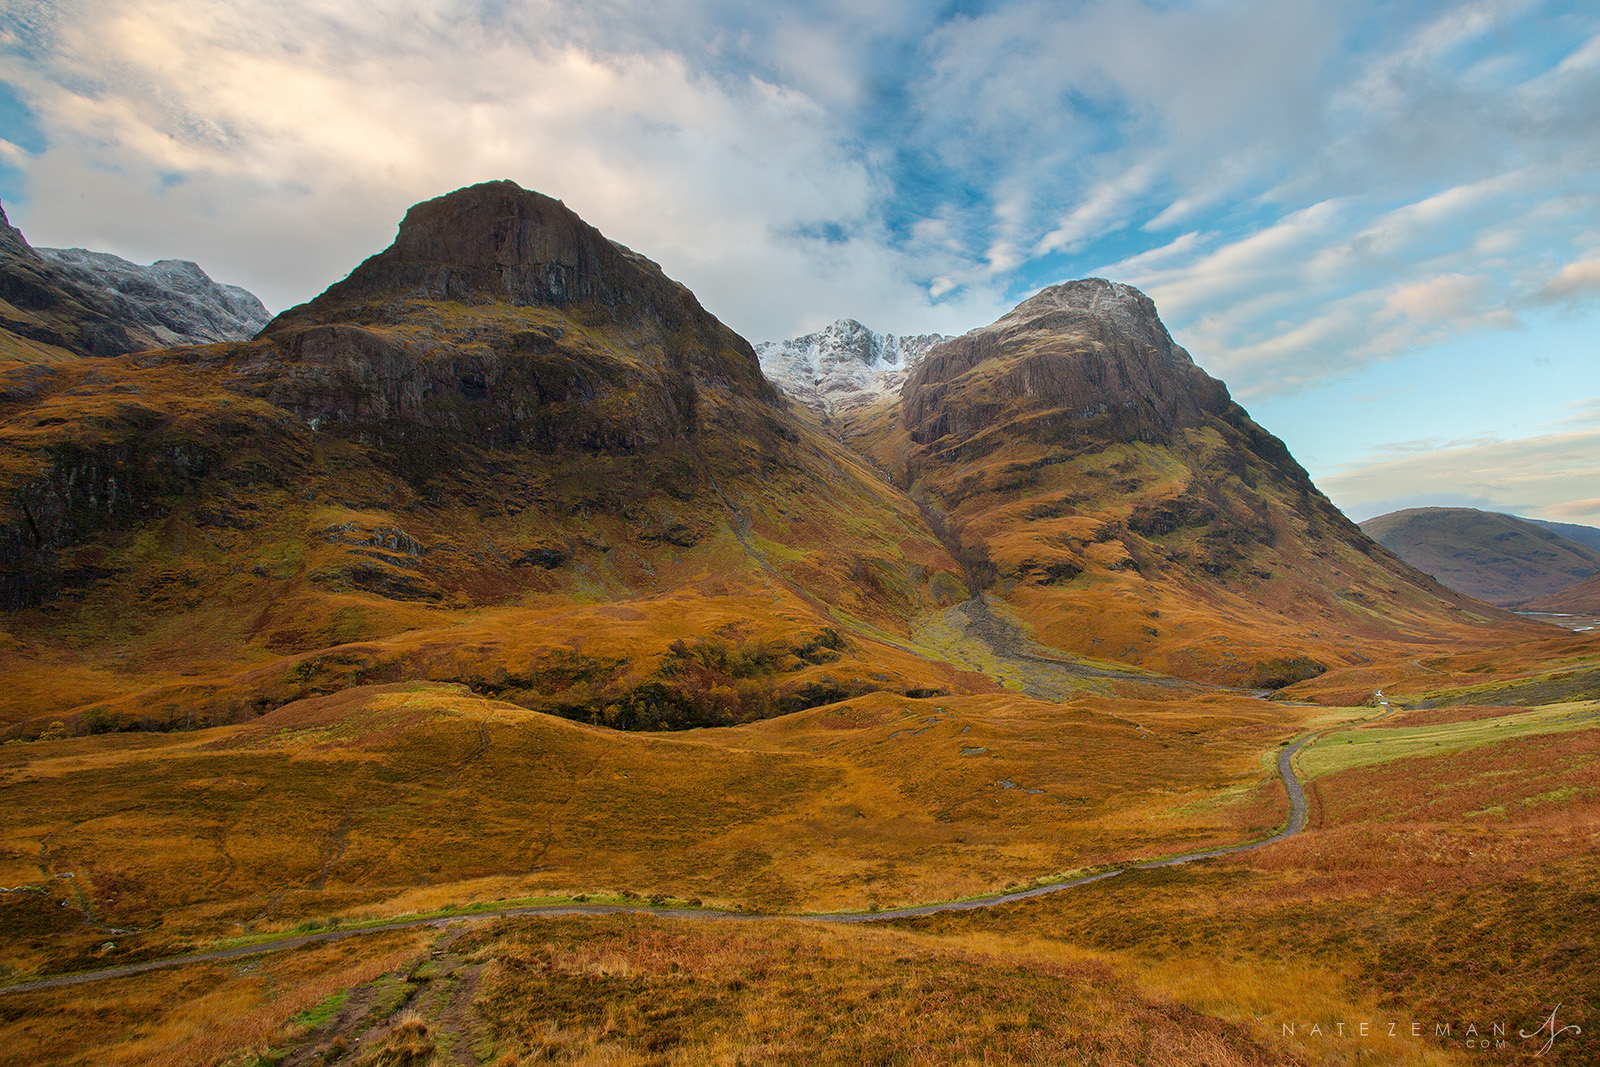 glen coe, glencoe, three sisters, mountains, scotland, scottish highlands, highlands, uk, , photo